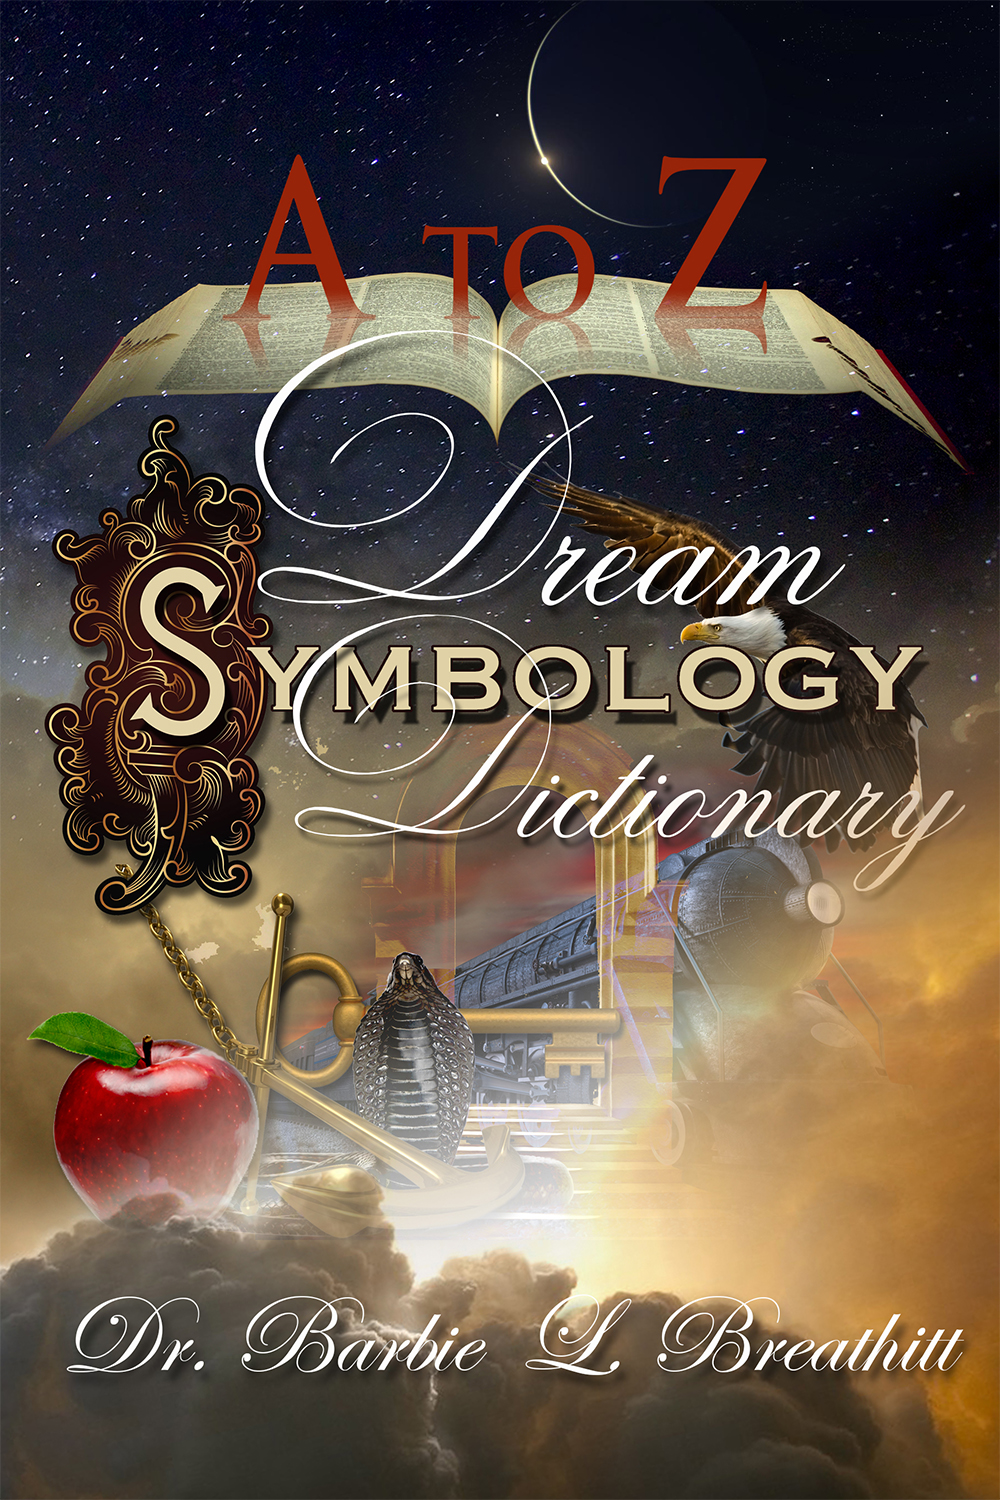 A to Z Dream Symbology web.jpg